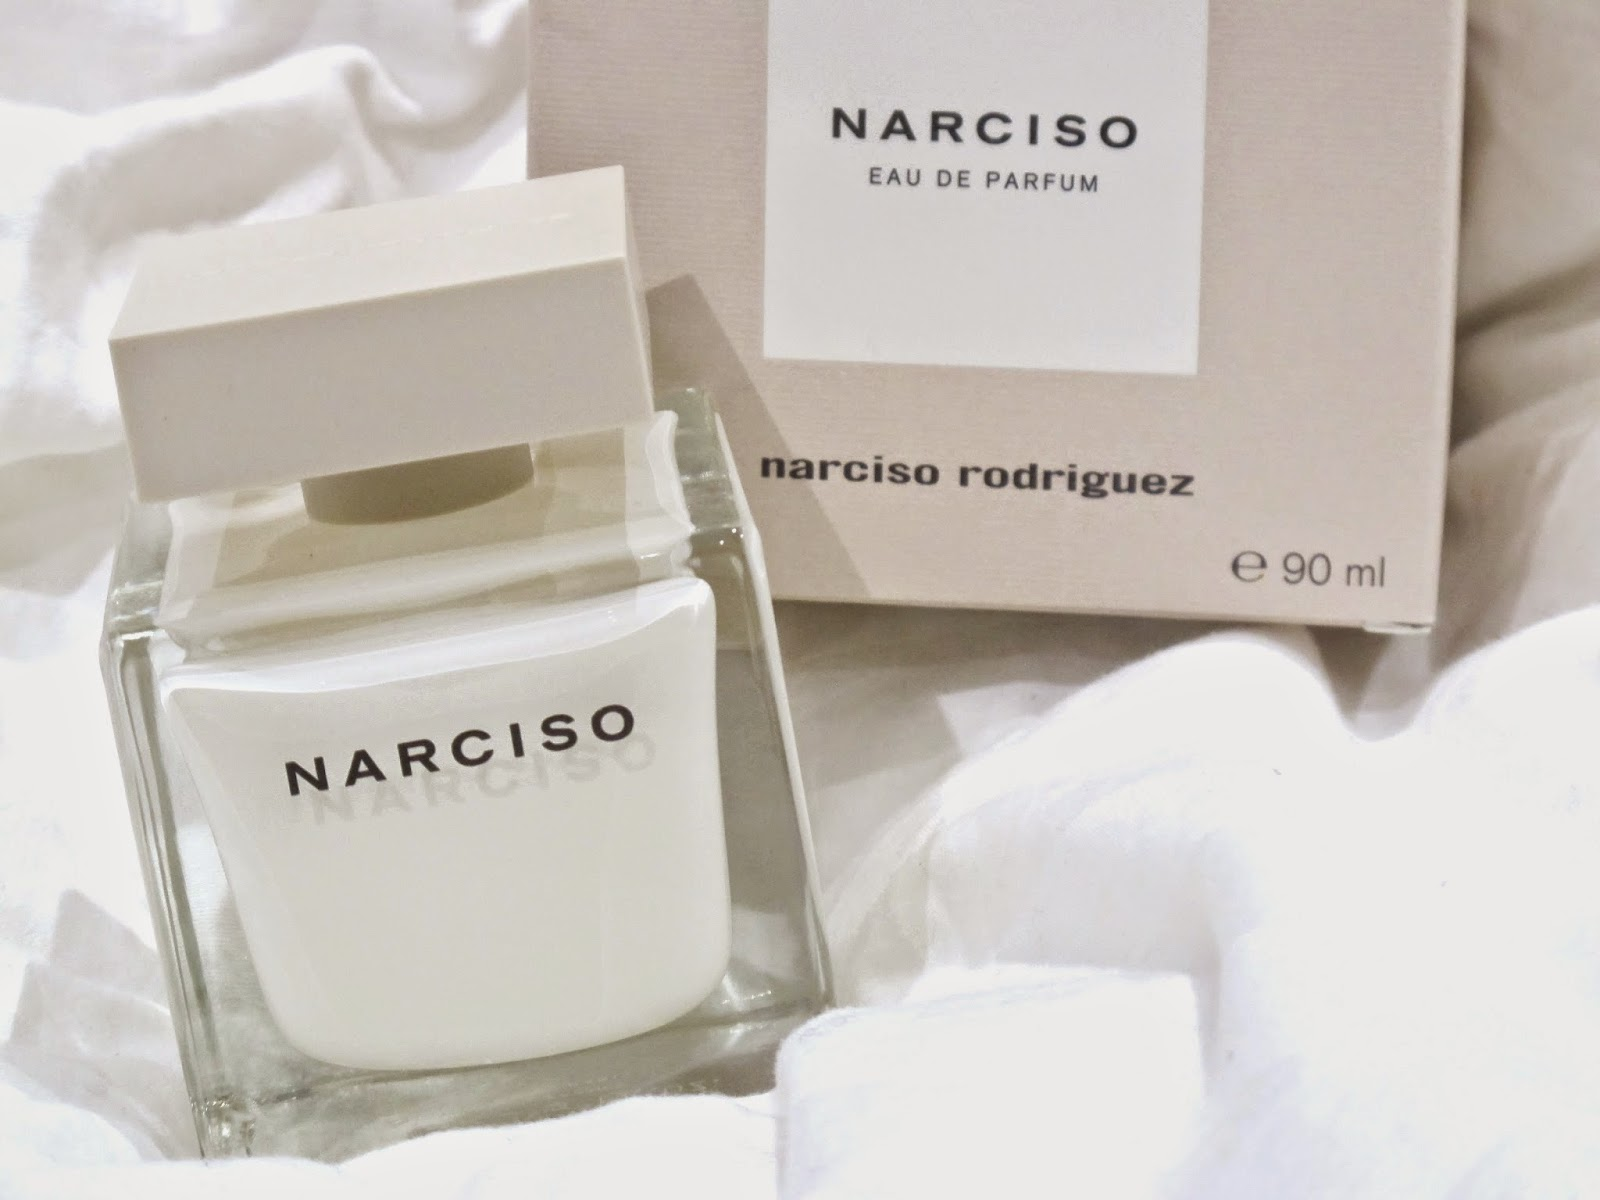 NARCISO fragrance by Narciso Rodriguez